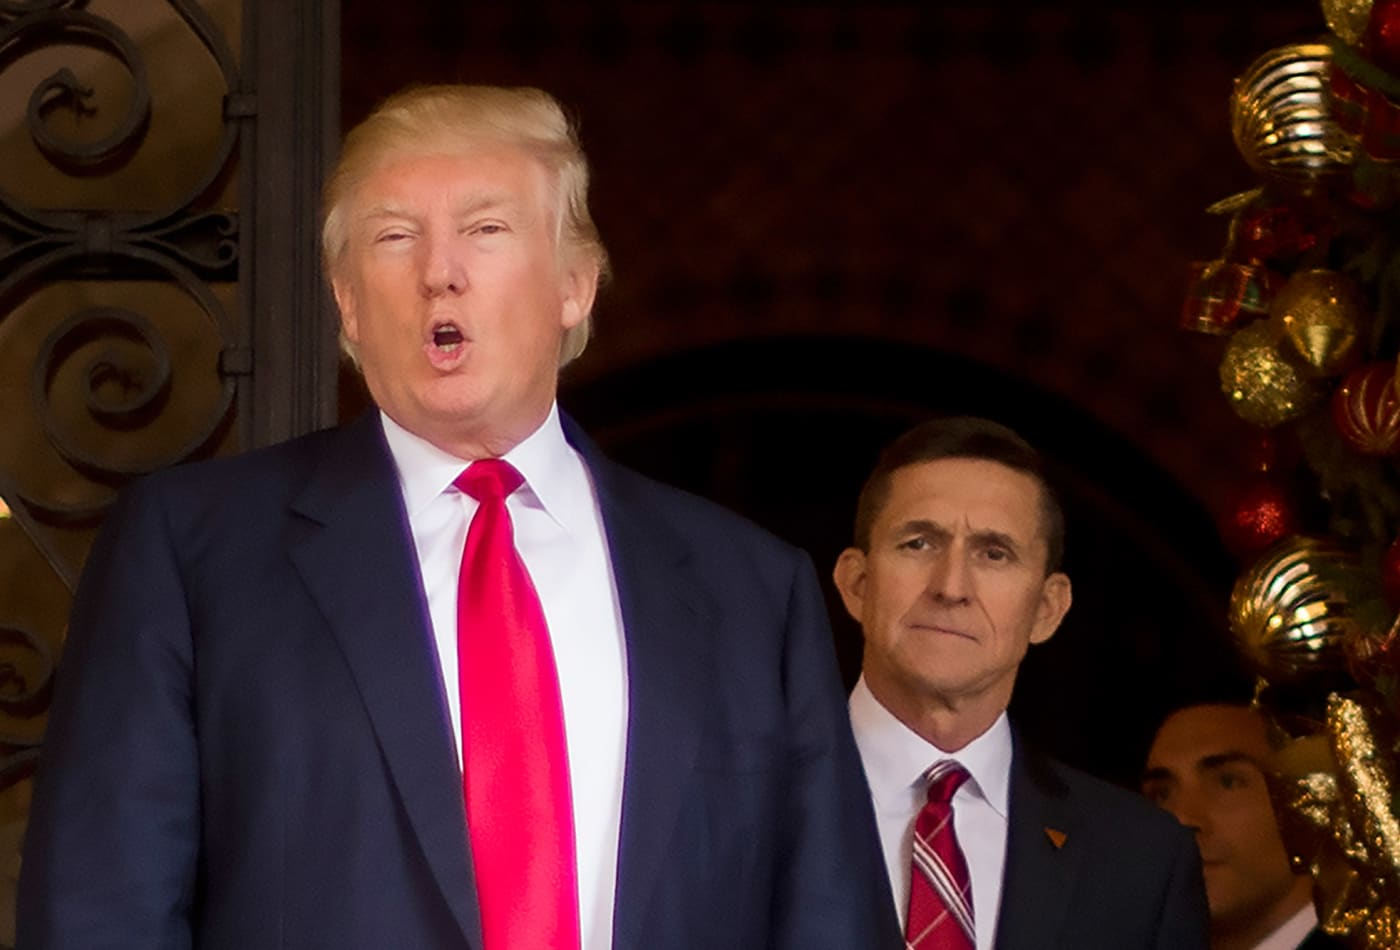 Trump considering 'full pardon' of former national security advisor Michael Flynn